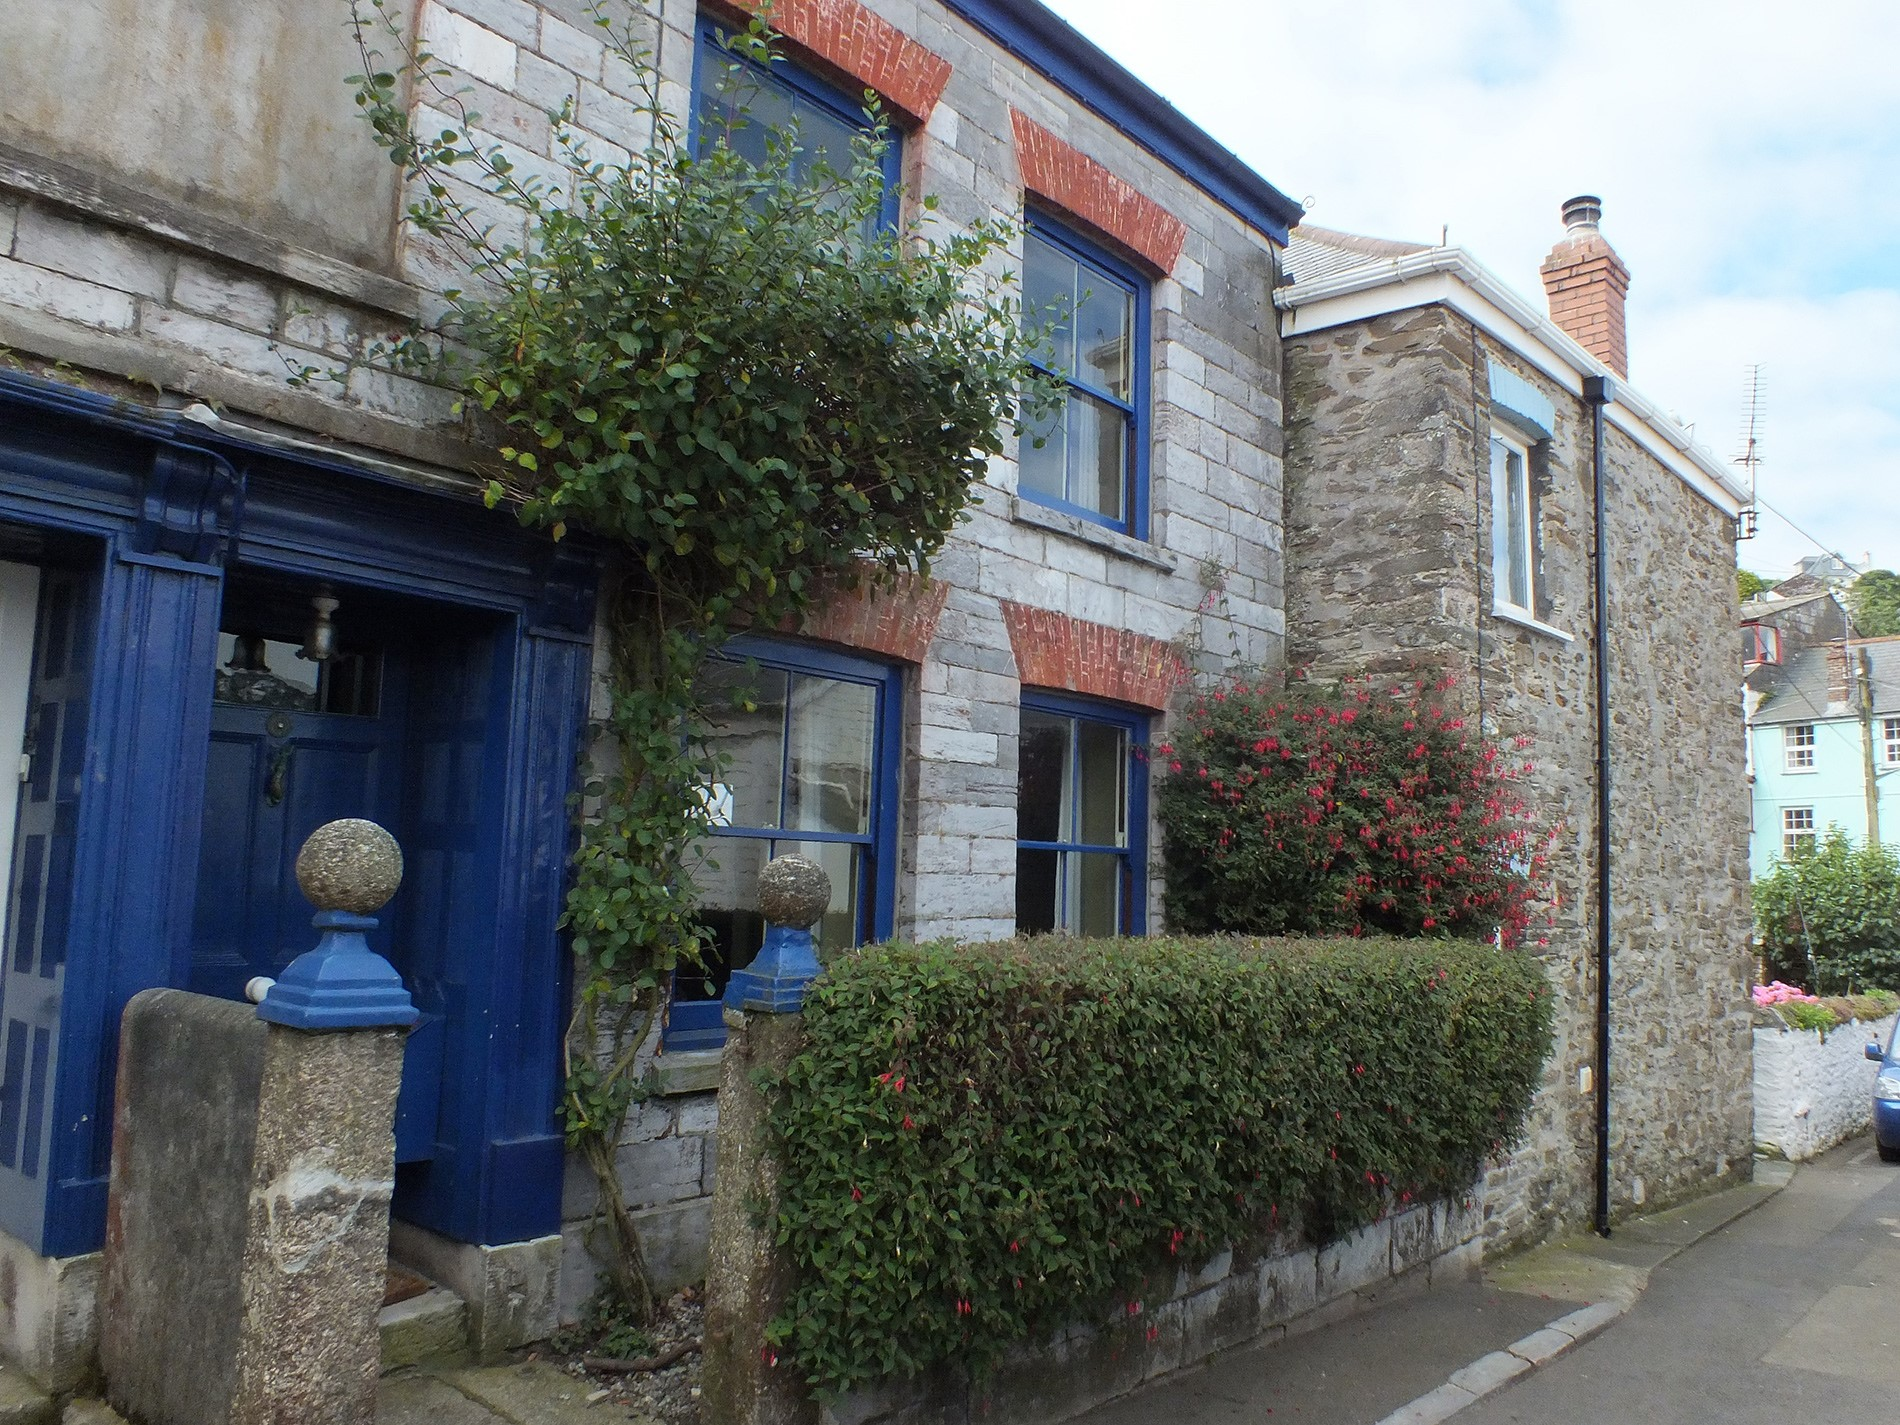 3 Bedroom House in South Cornwall, Cornwall